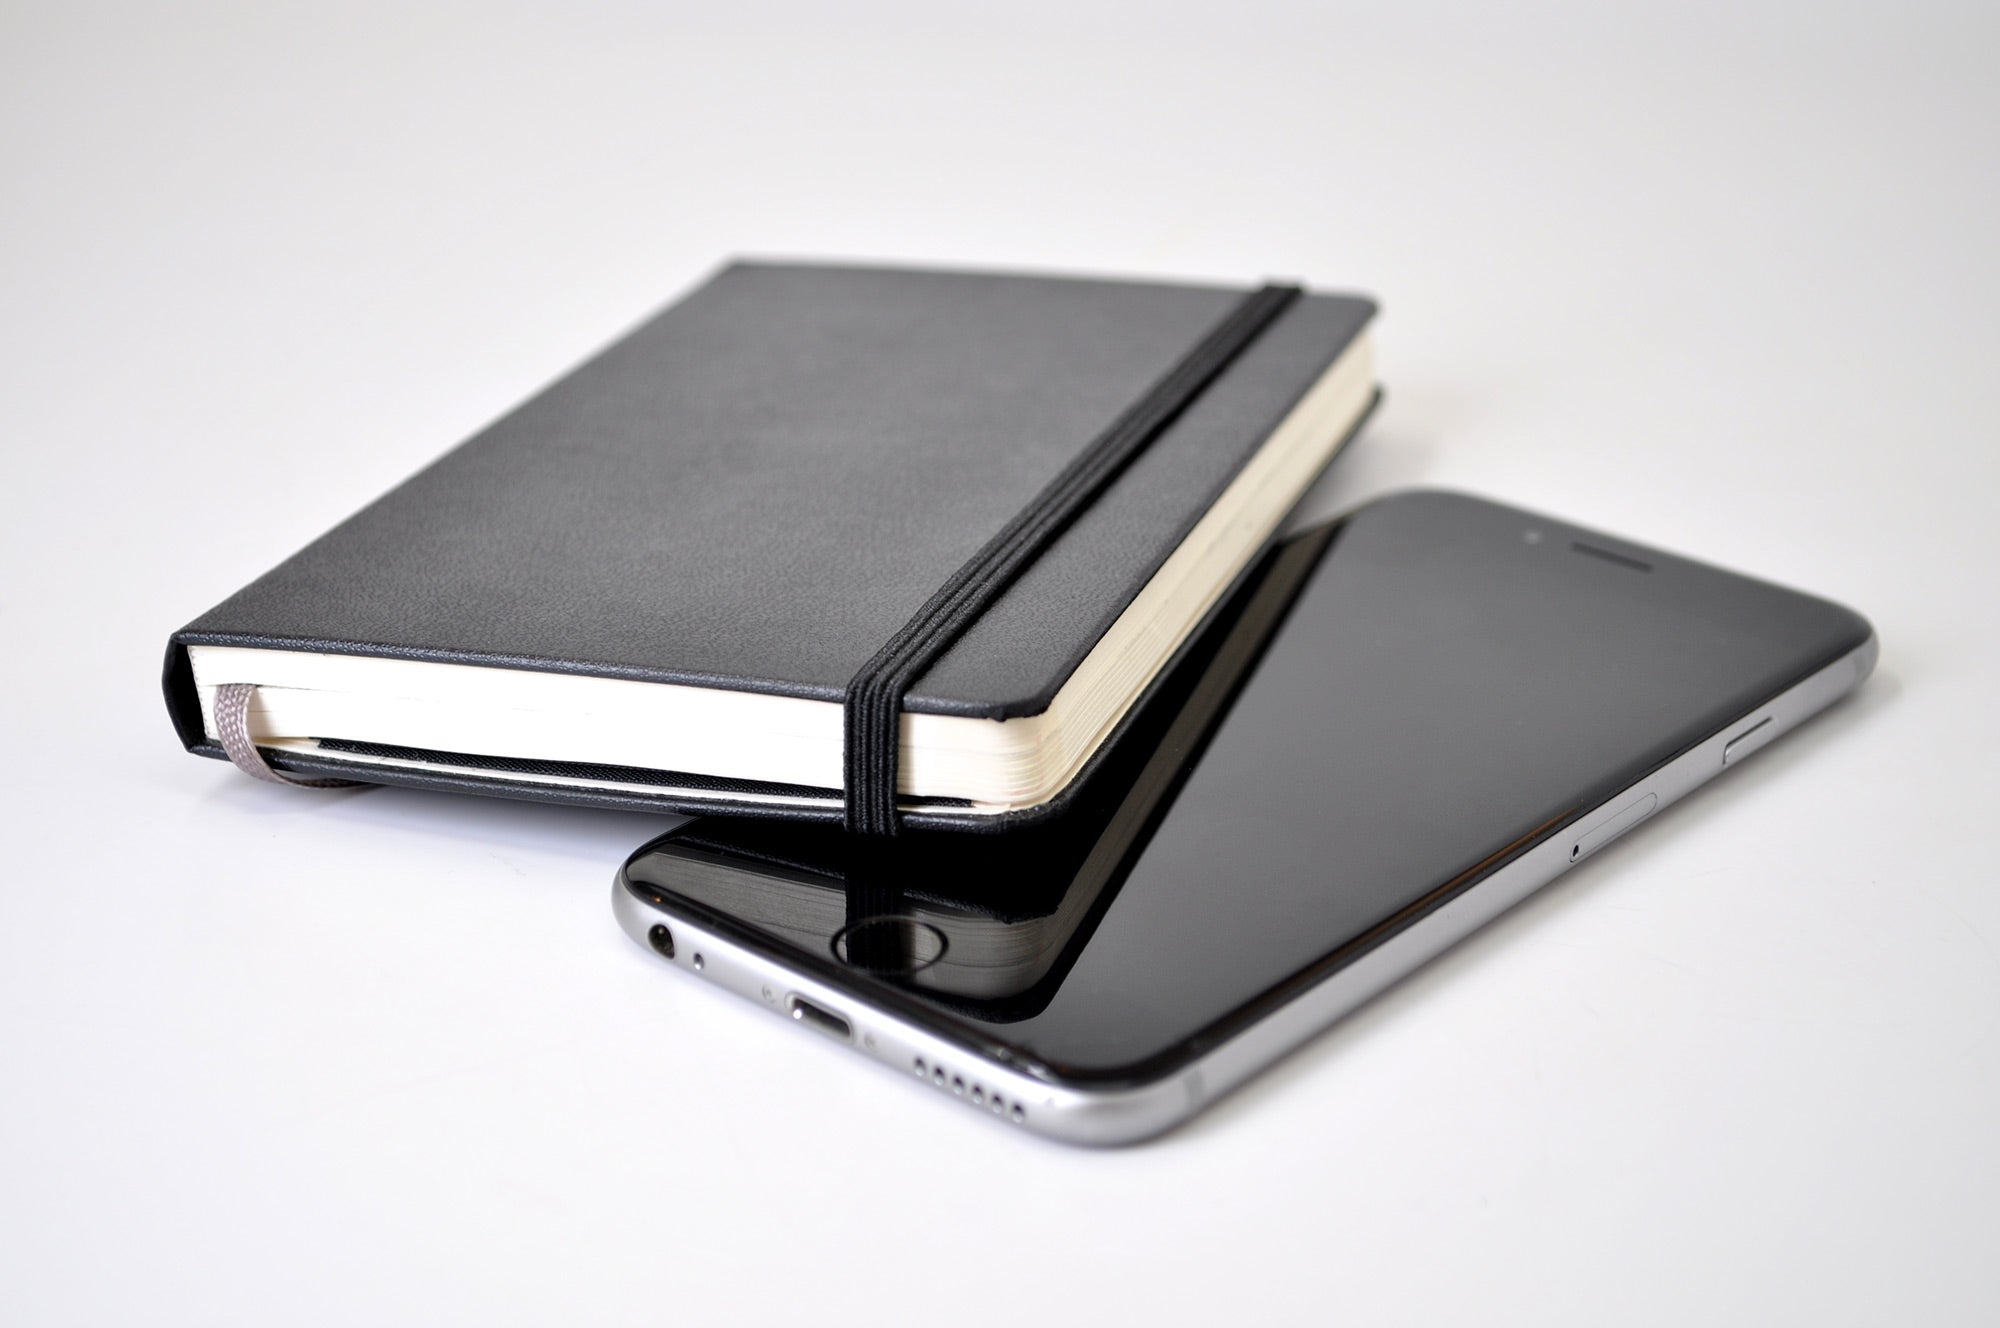 pocket Moleskine hardcover and iphone smartphone size